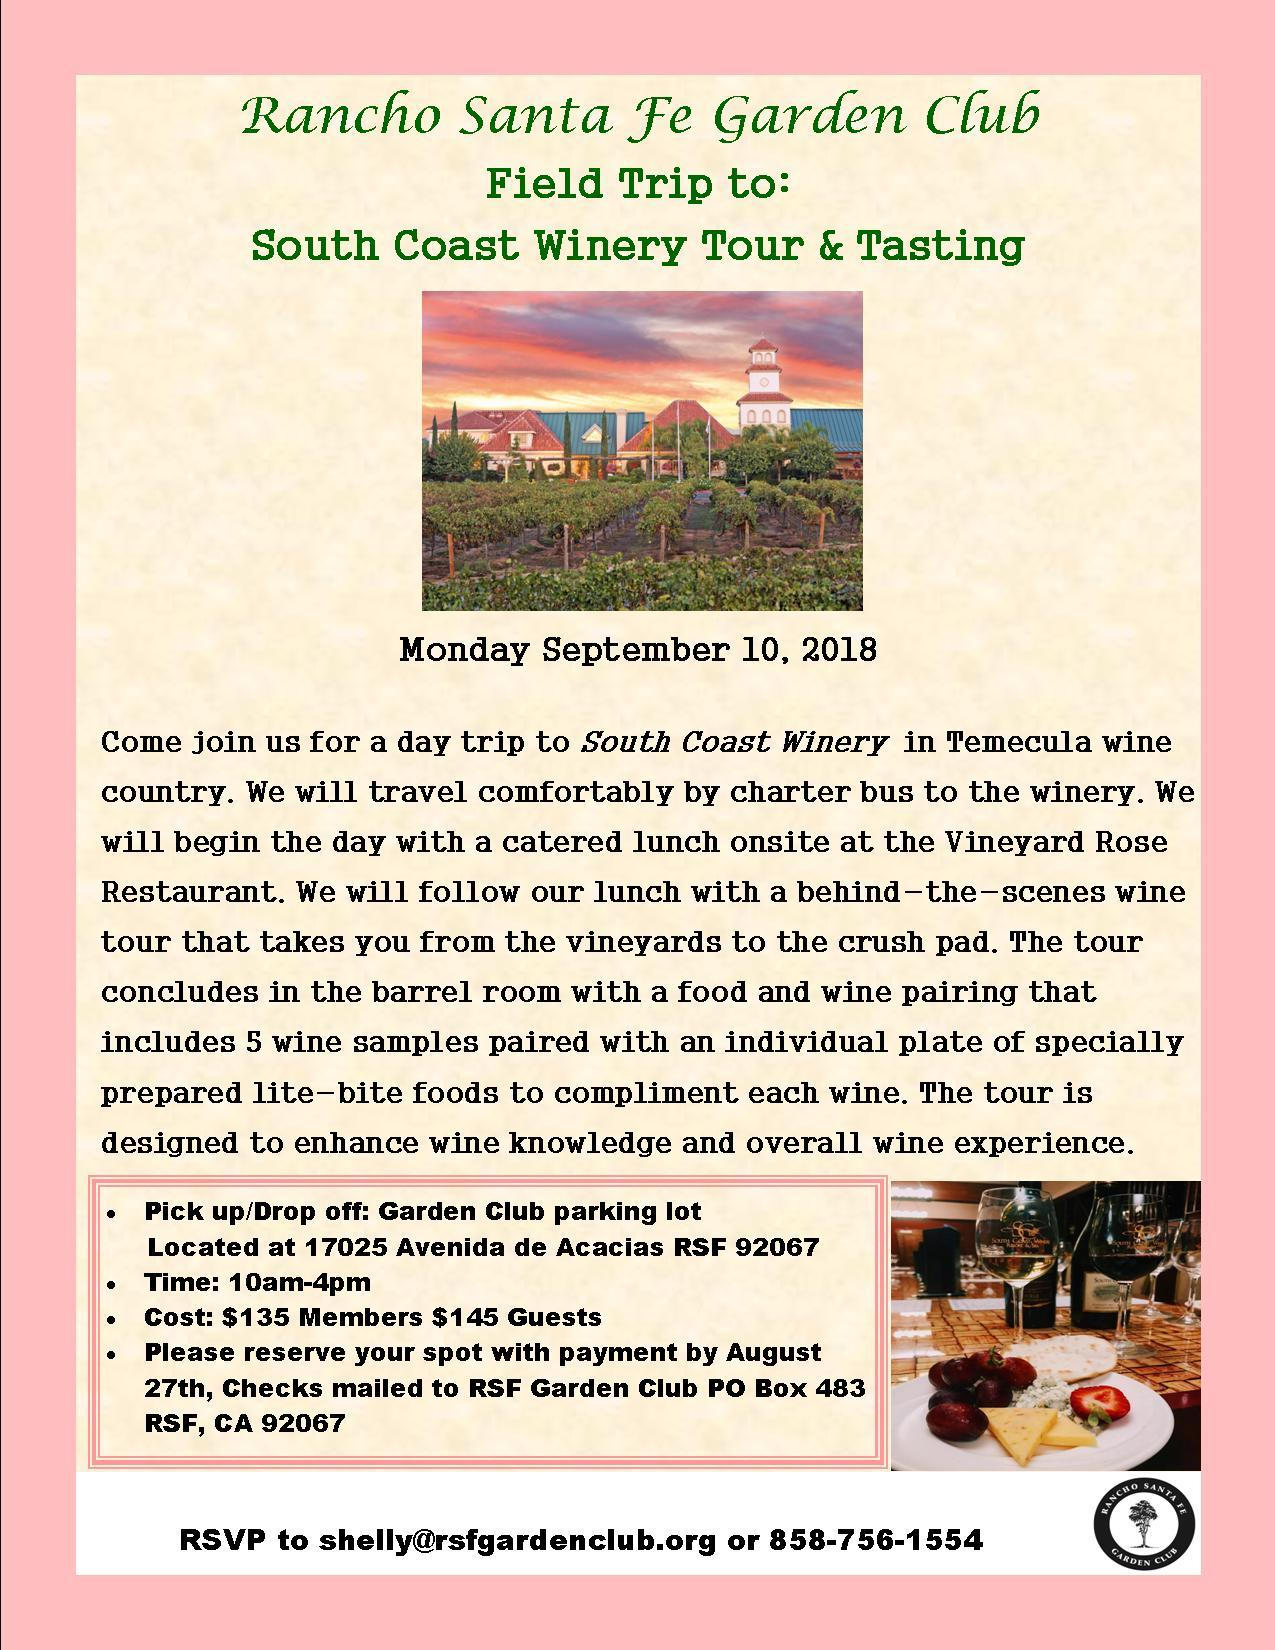 South Coast Winery Tour & Tasting